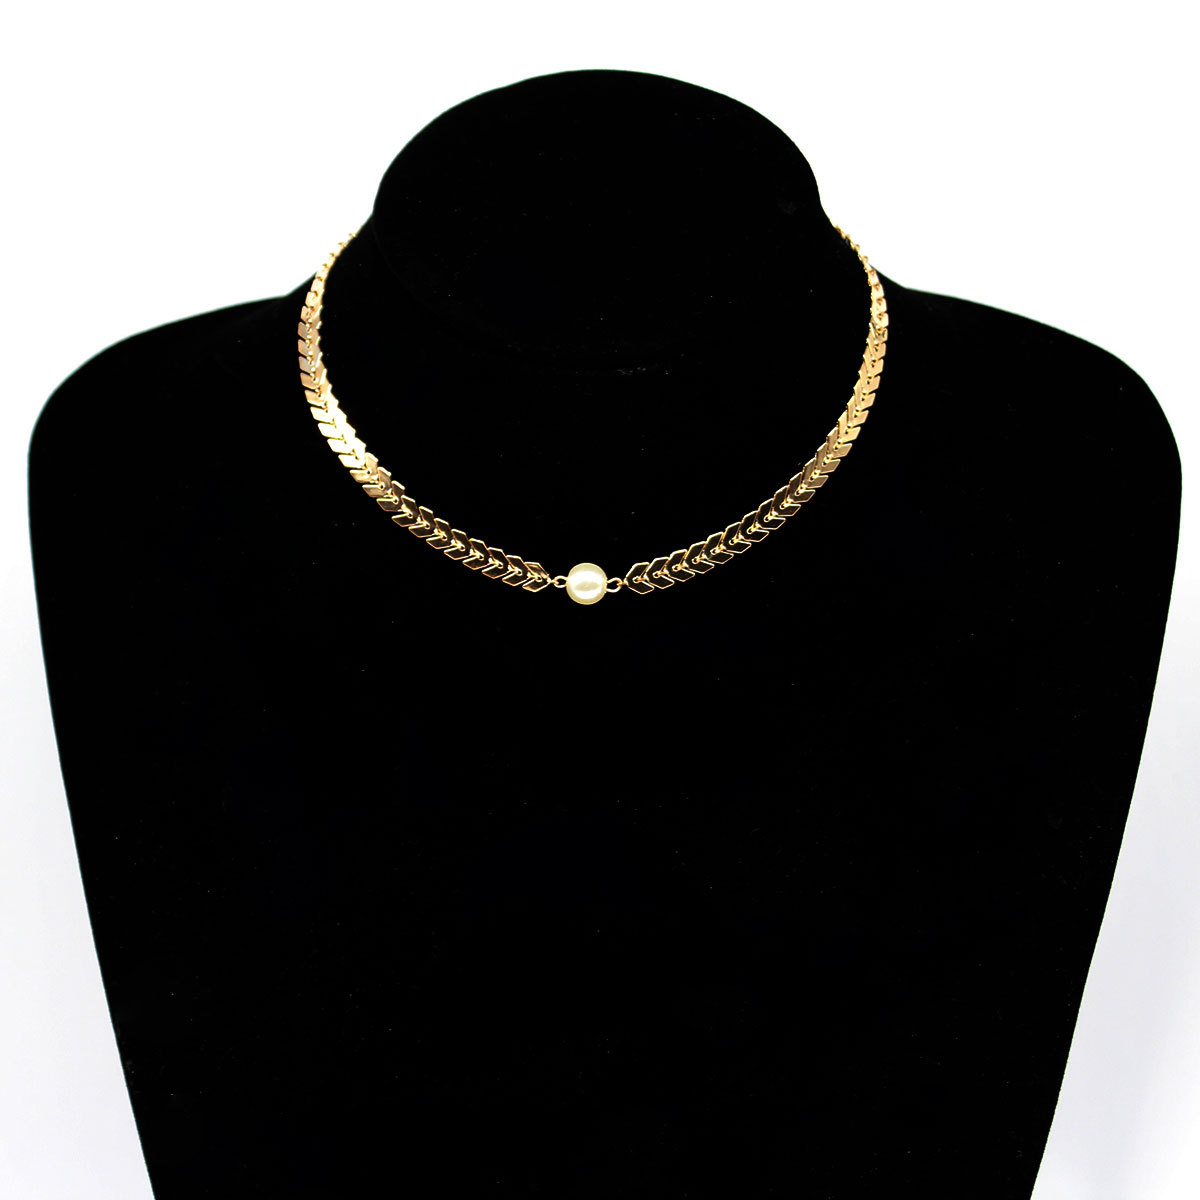 Fashion Personality Aircraft Chain Necklace Women Simple Trendy Pearl Clavicle Collares Jewelry